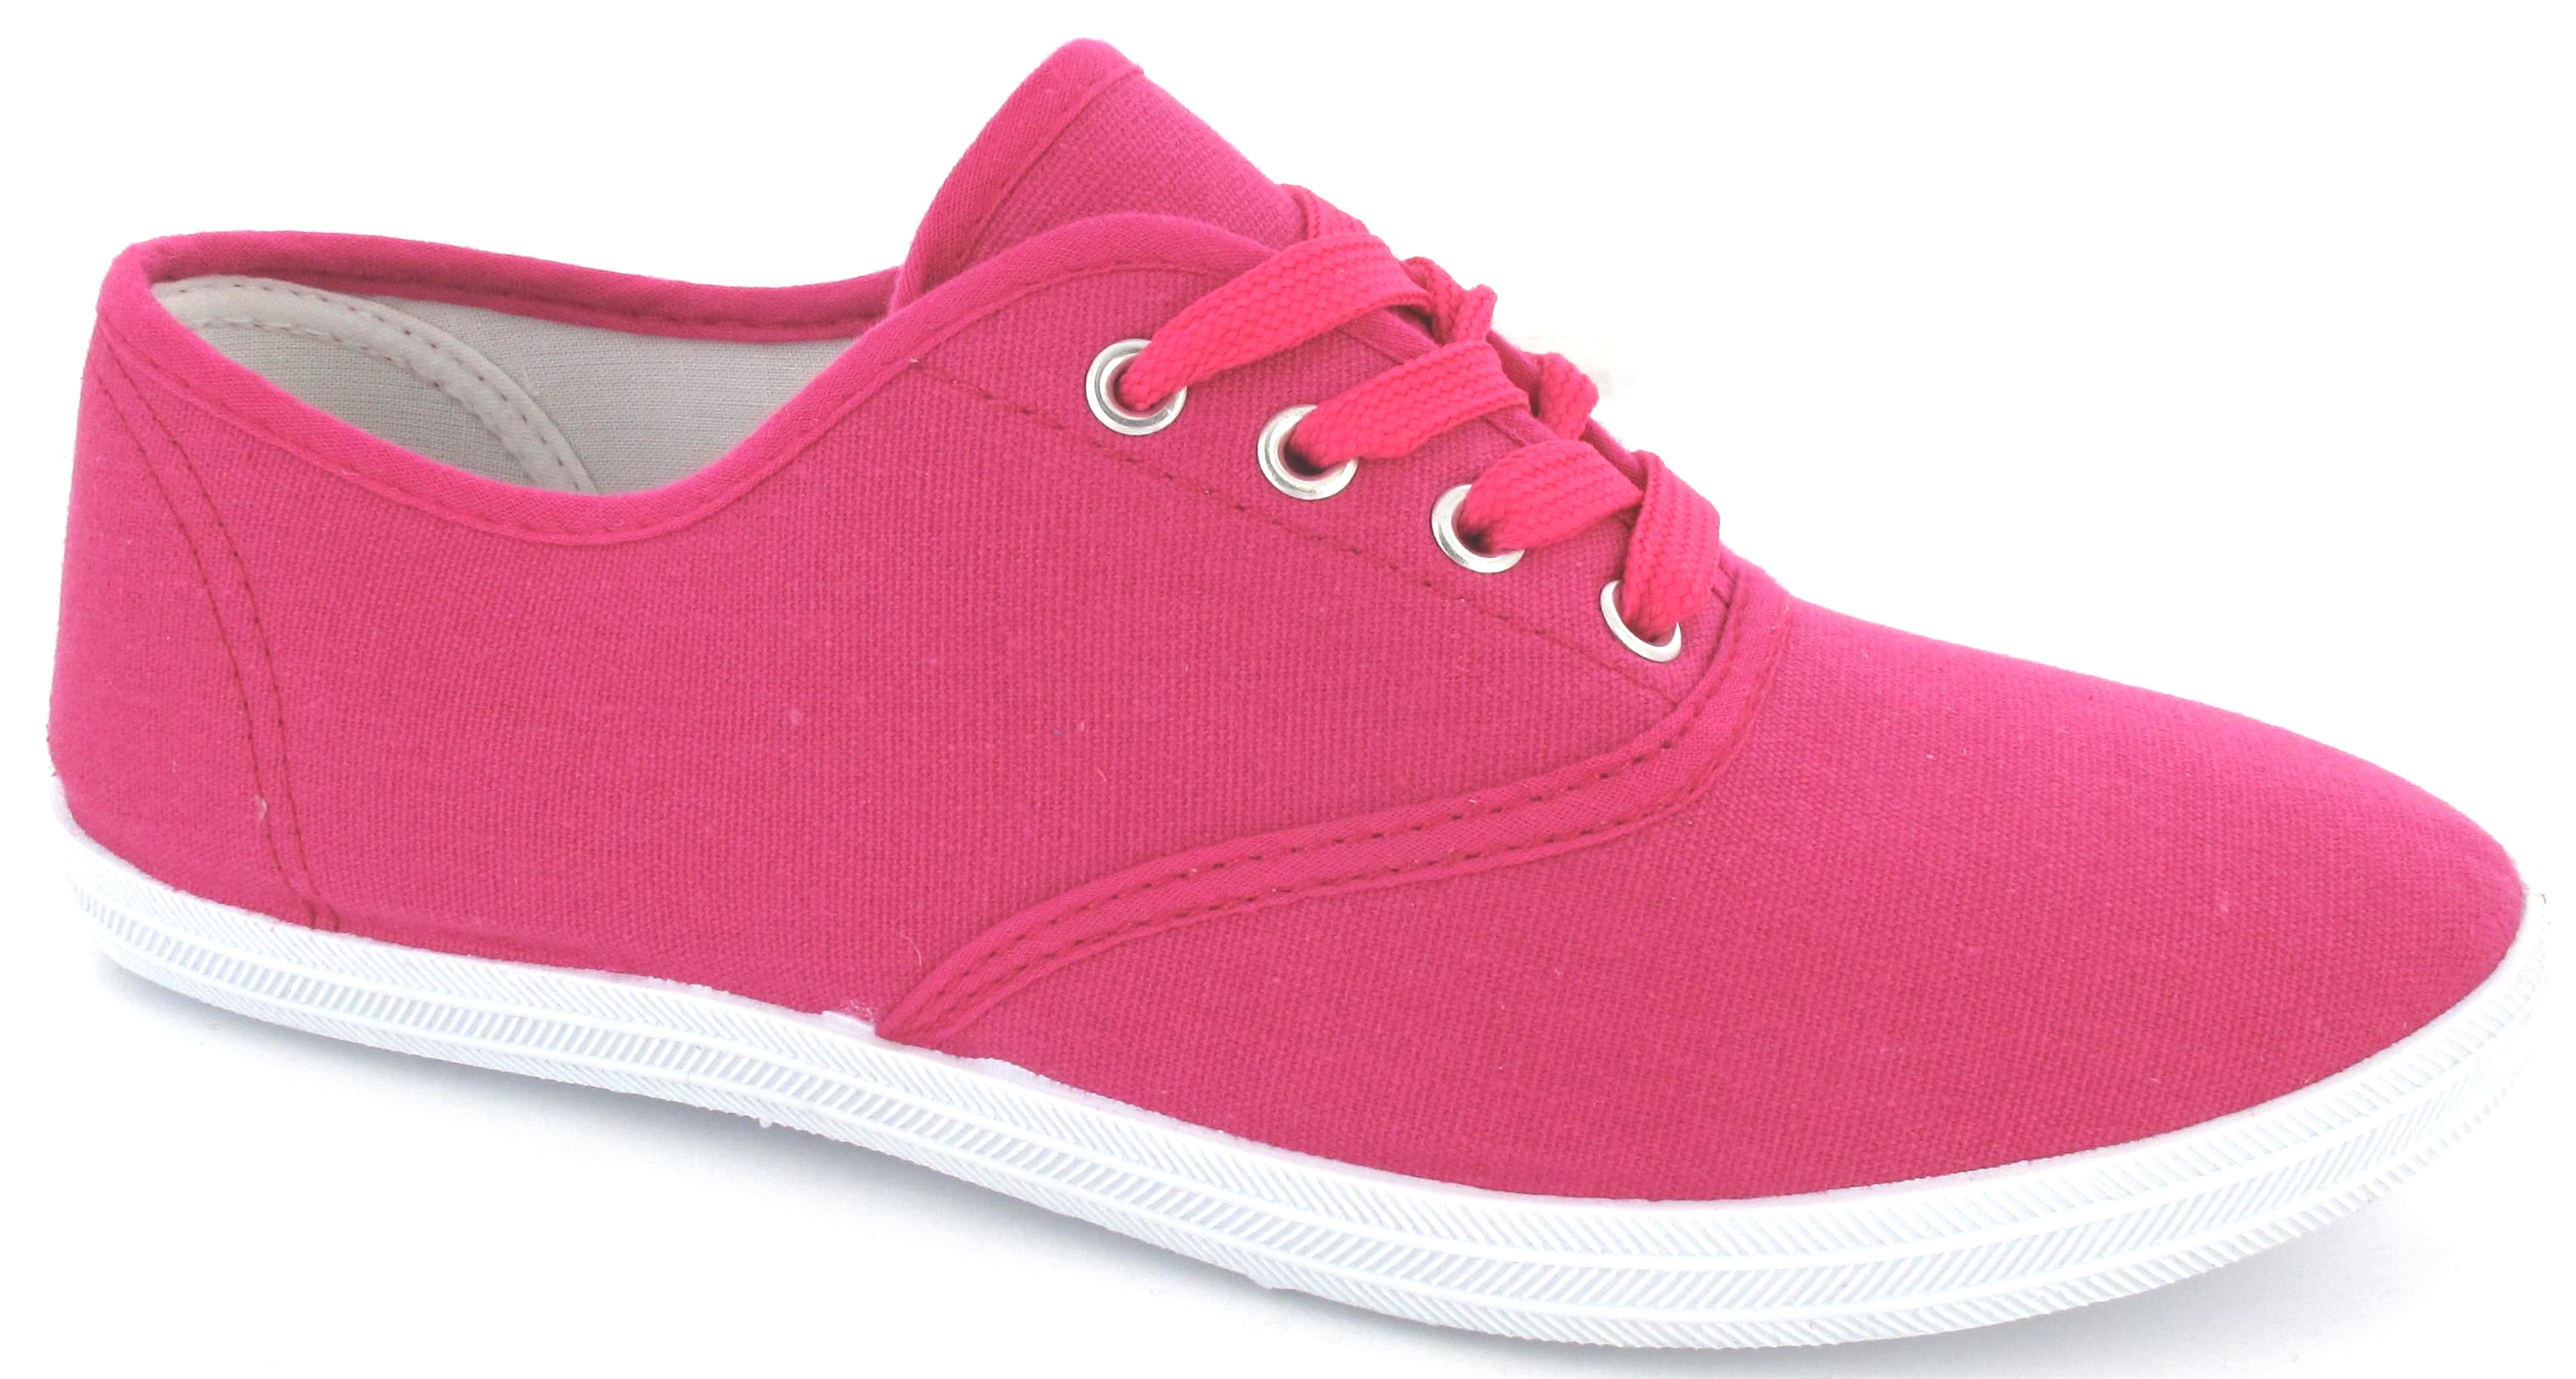 LADIES-WOMENS-PLIMSOLES-LACE-UP-FLAT-PUMPS-PLIMSOLLS-CANVAS-GIRLS-TRAINERS-SIZE